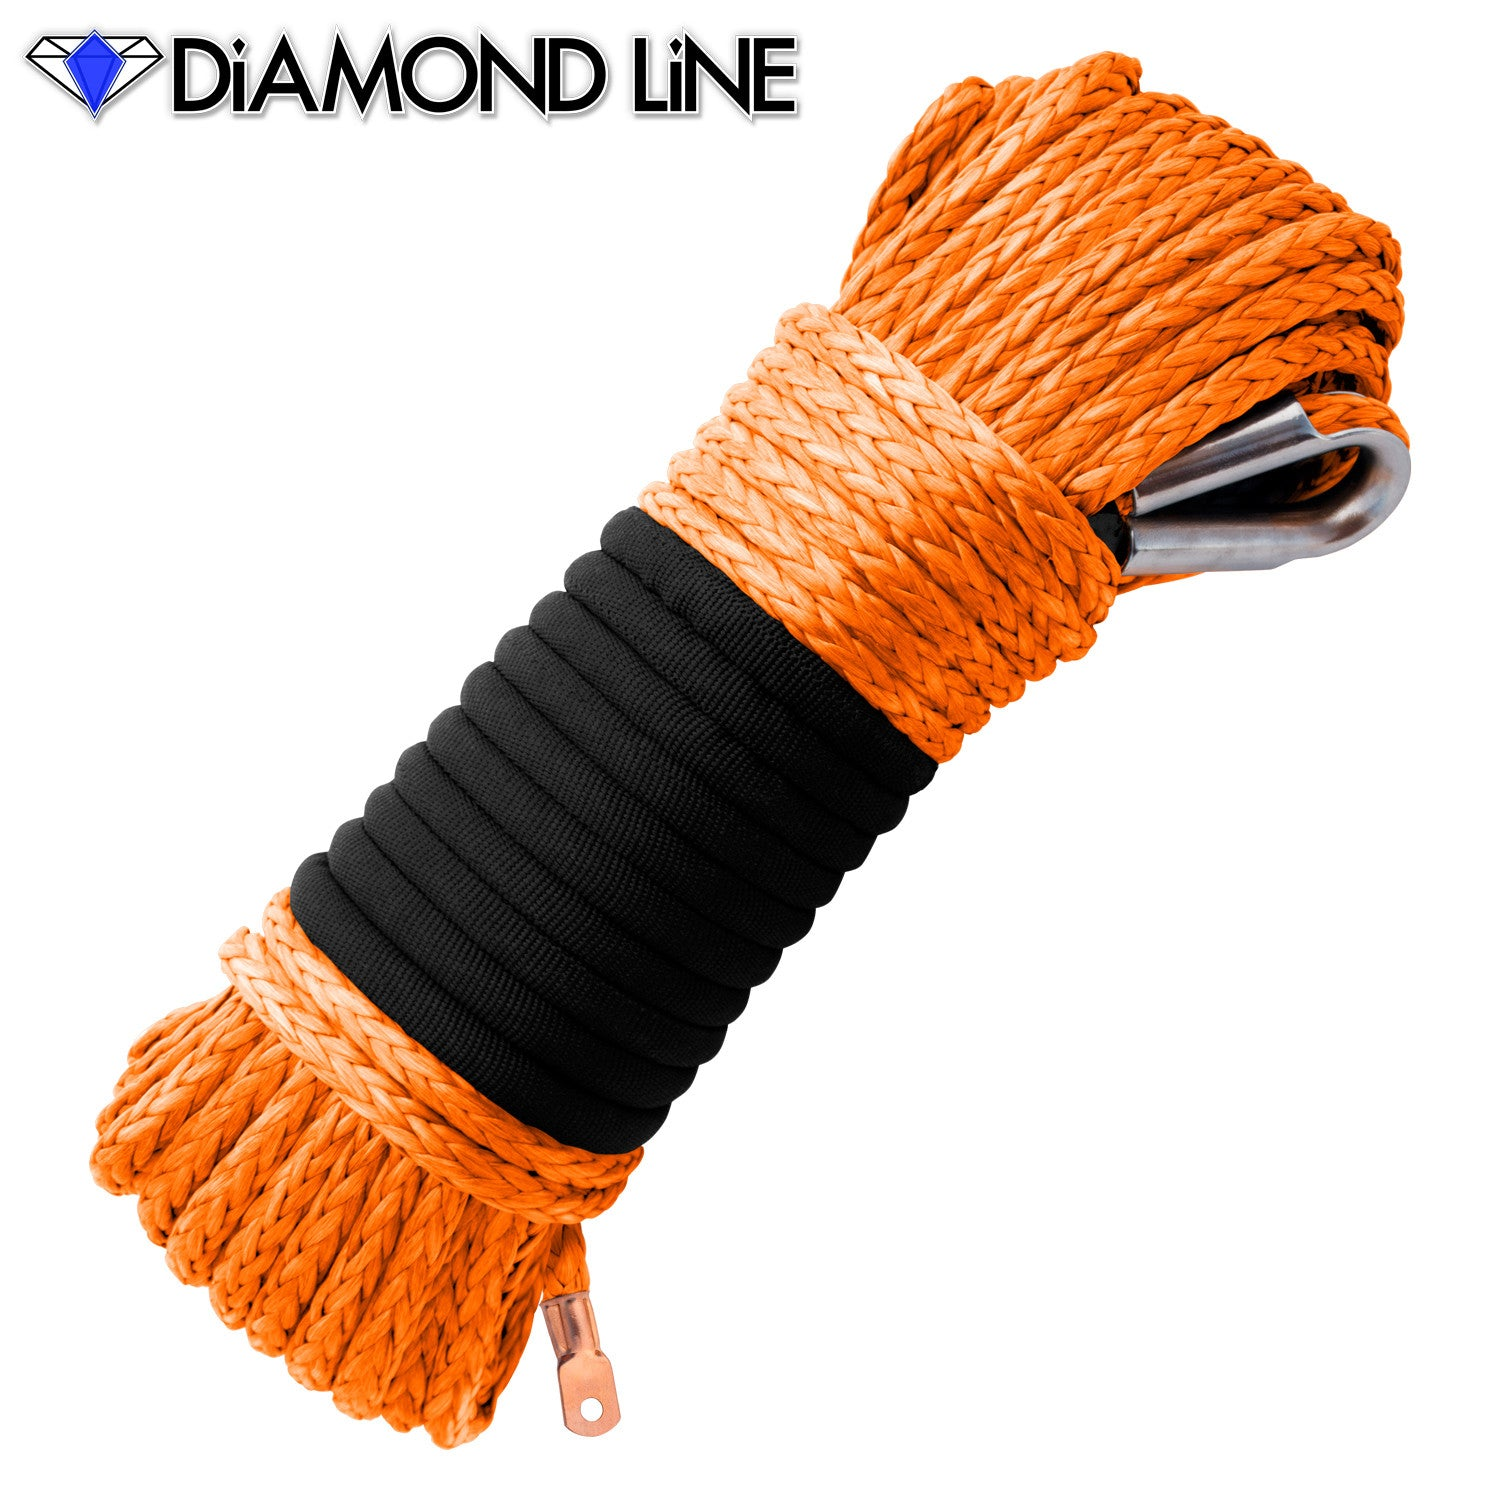 "5/16"" Diamond Line Winch Rope Mainline - Orange."